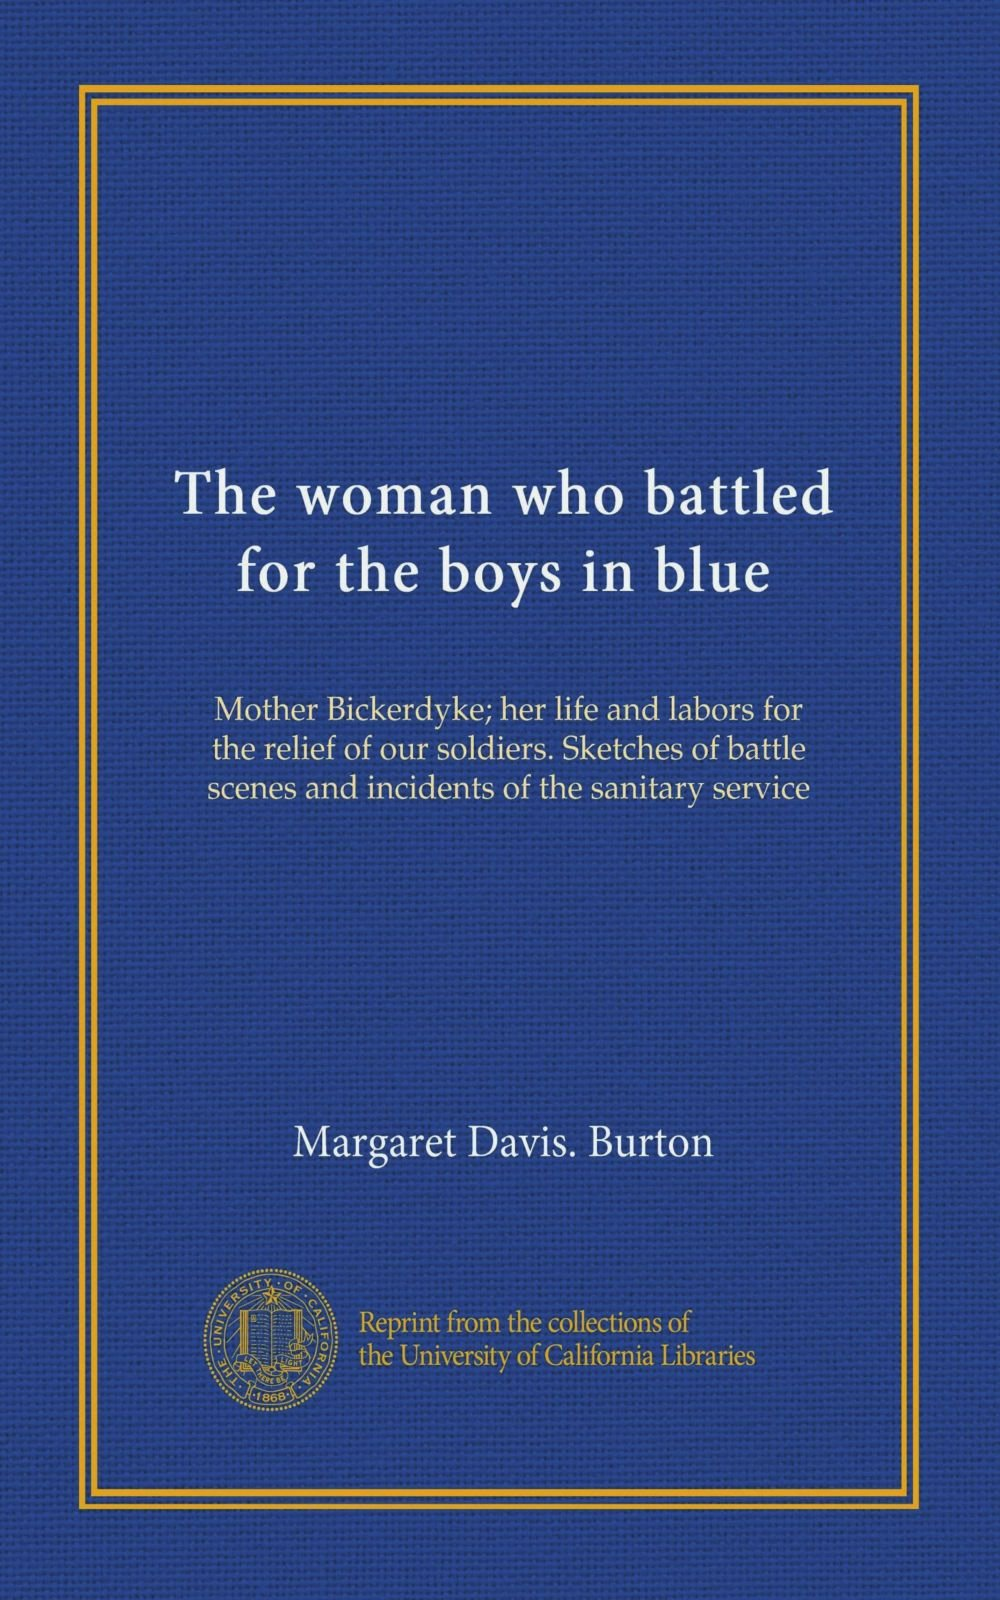 Read Online The woman who battled for the boys in blue: Mother Bickerdyke; her life and labors for the relief of our soldiers. Sketches of battle scenes and incidents of the sanitary service pdf epub